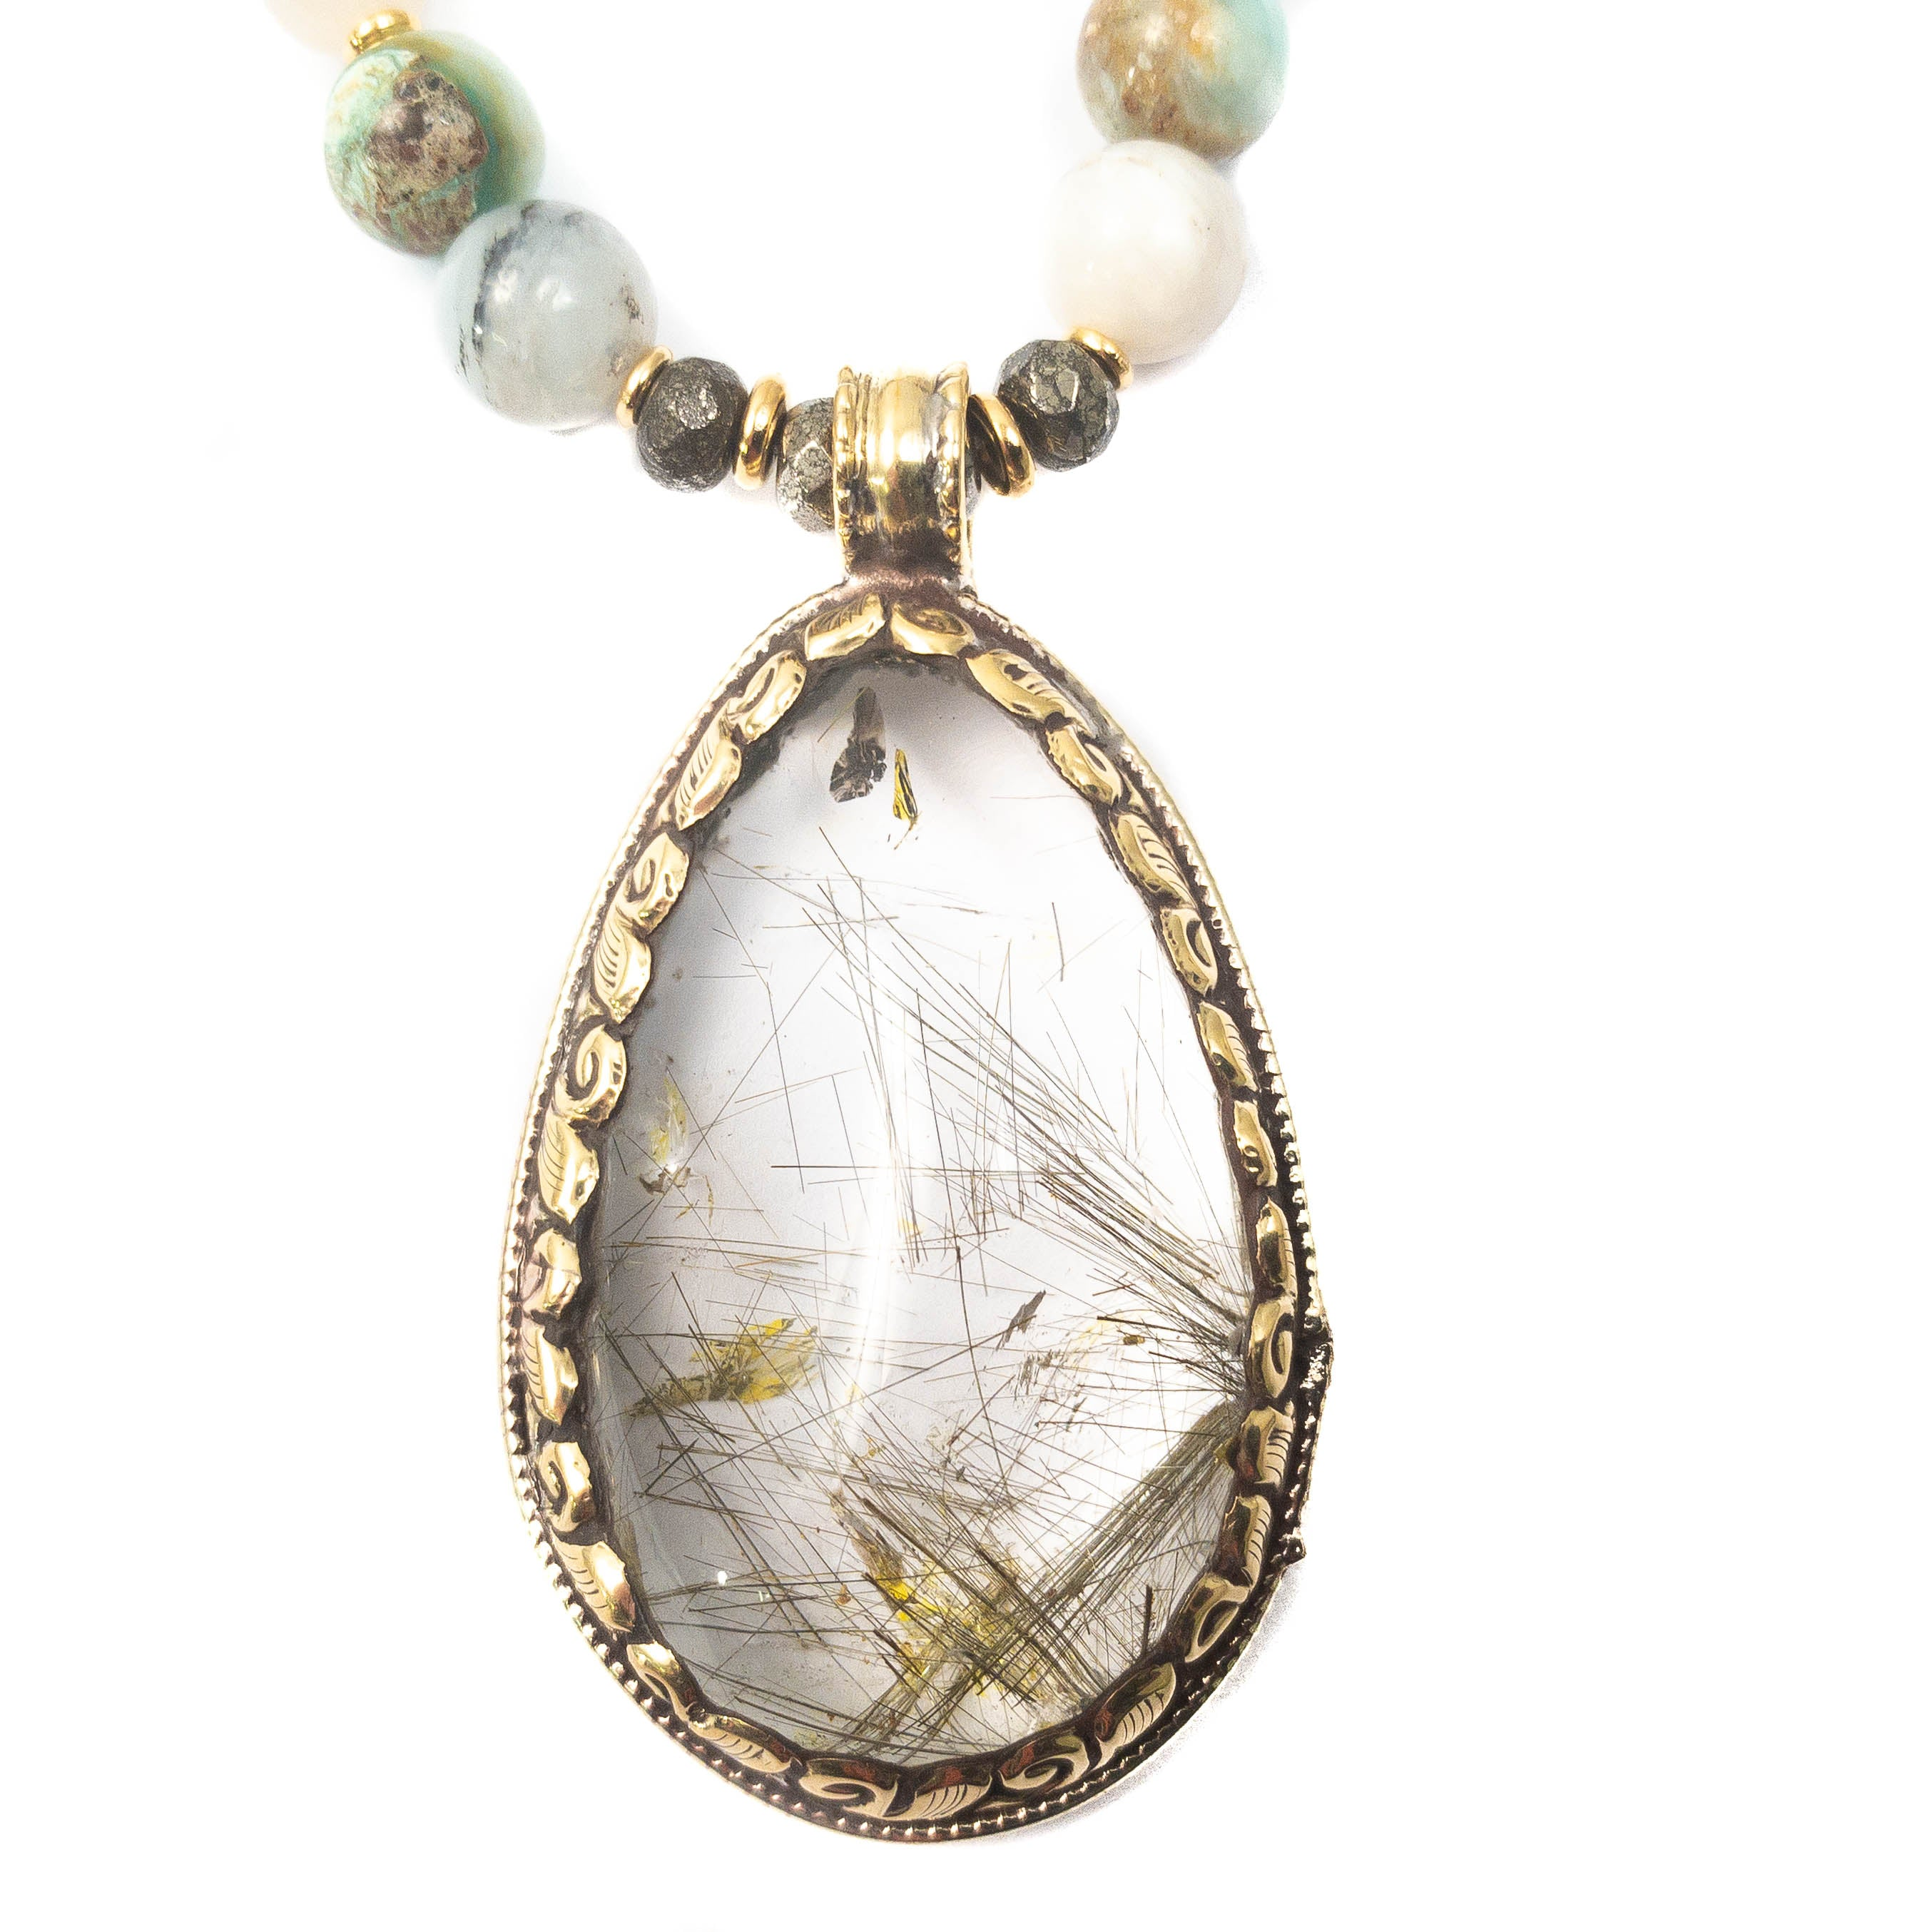 Nepali Repousse Golden Rutilated Quartz Pendant on Natural Peruvian Opal Necklace